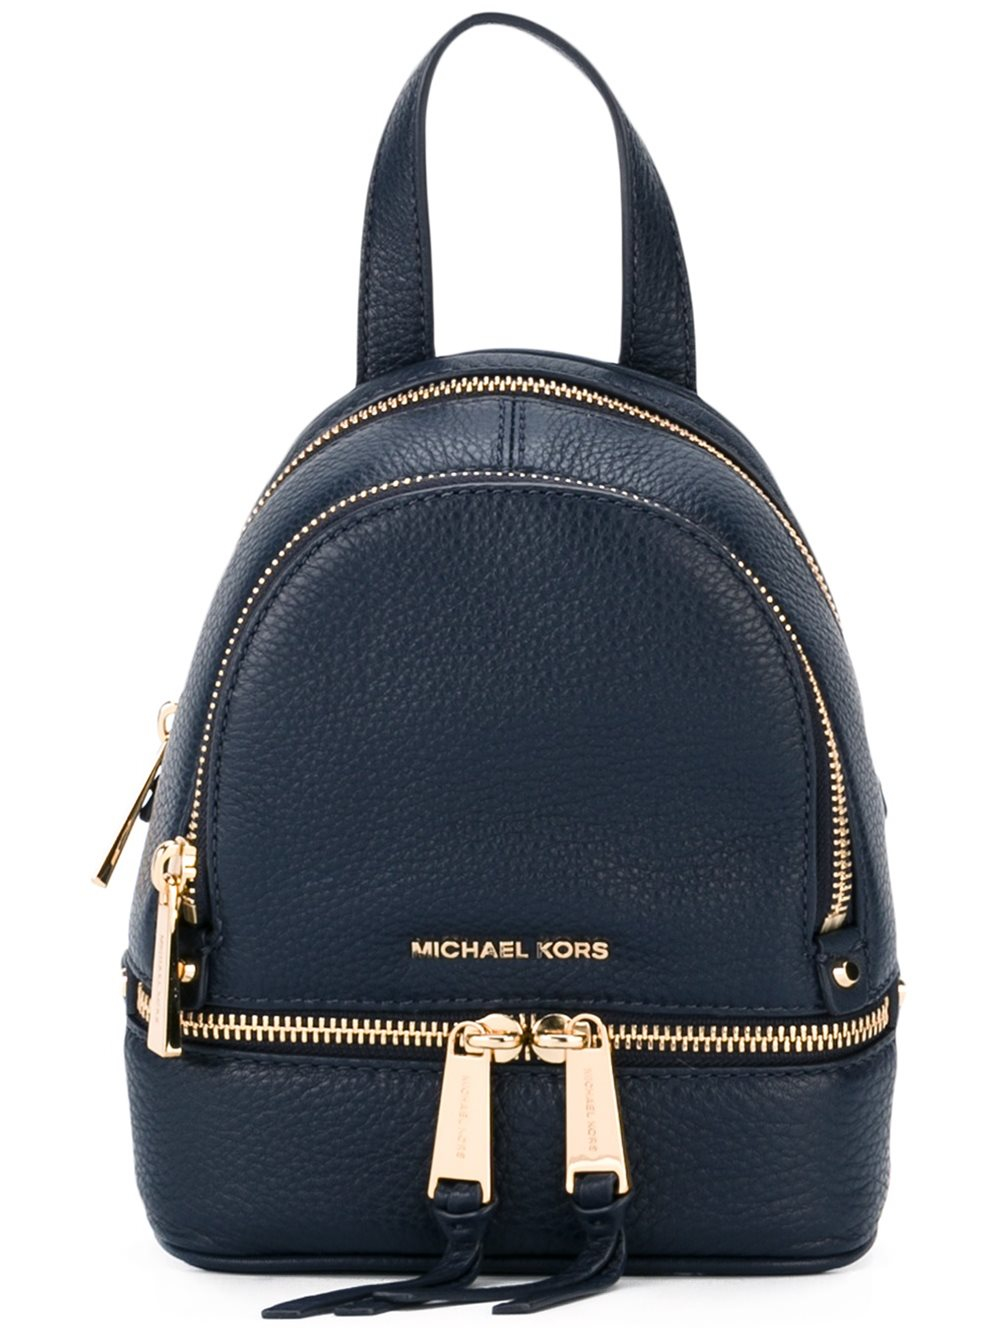 f6b6e42917de Michael Kors Extra Small Backpack Purse   Stanford Center for ...